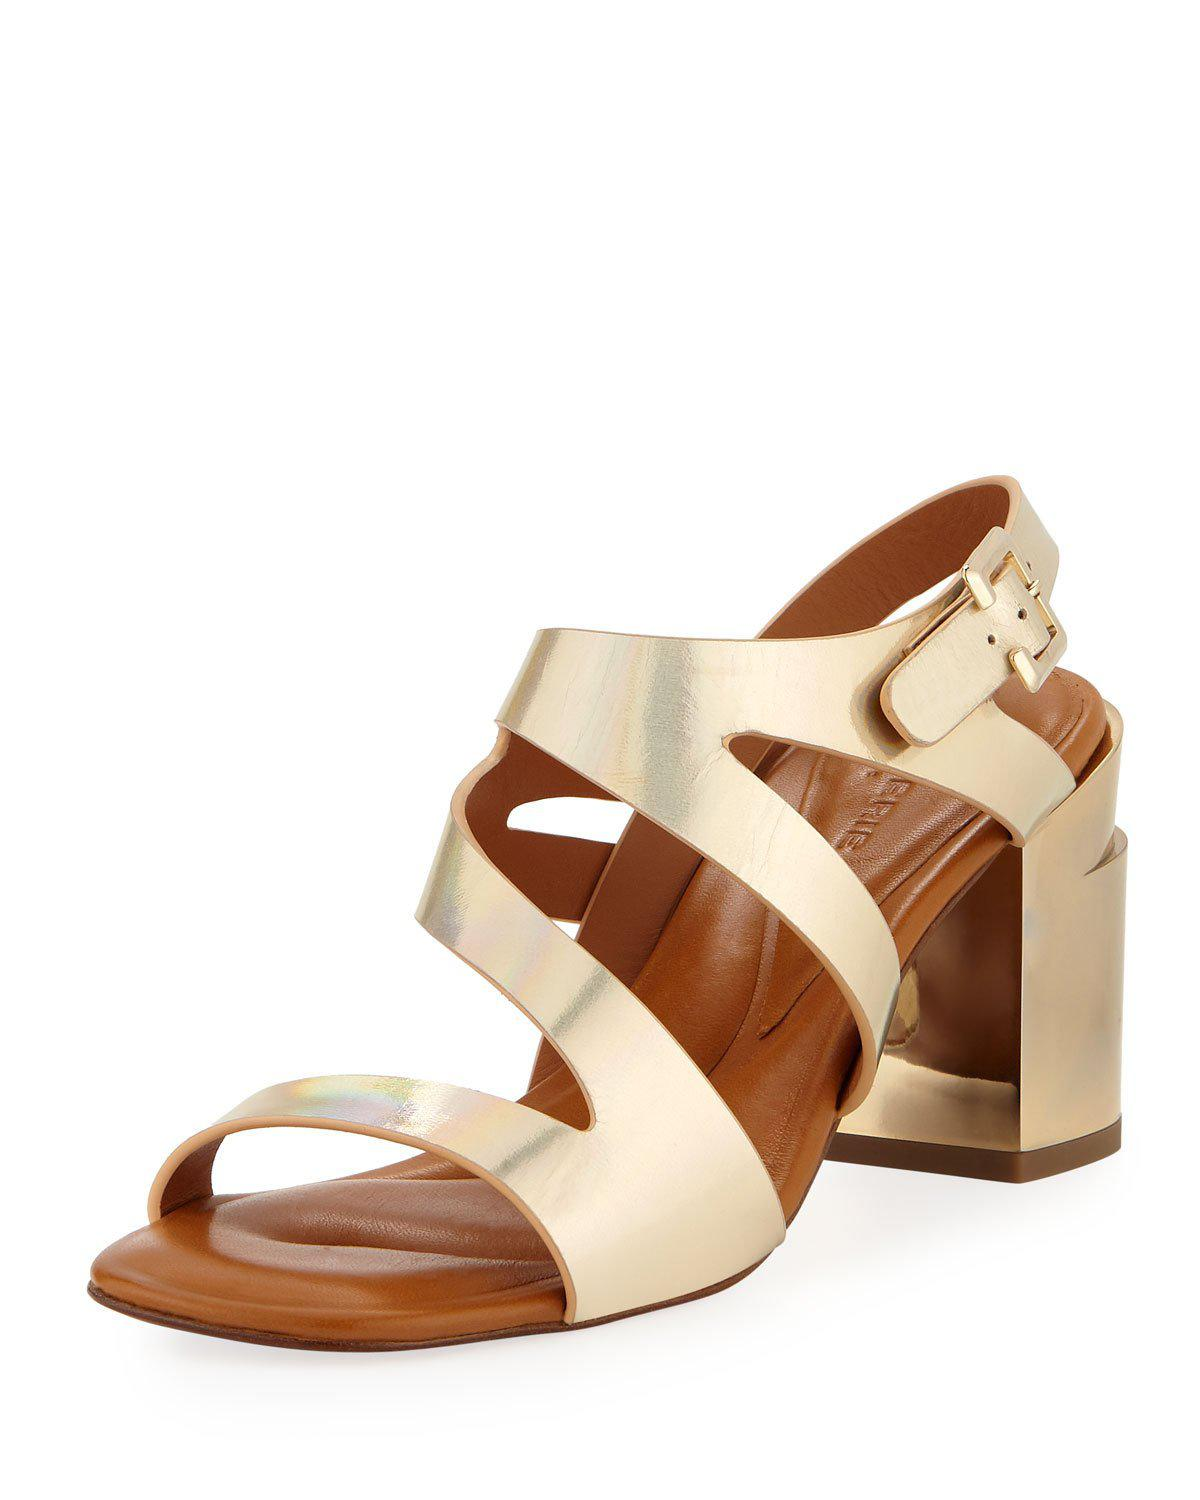 Robert Clergerie Above Metallic Strappy Sandals In Gold